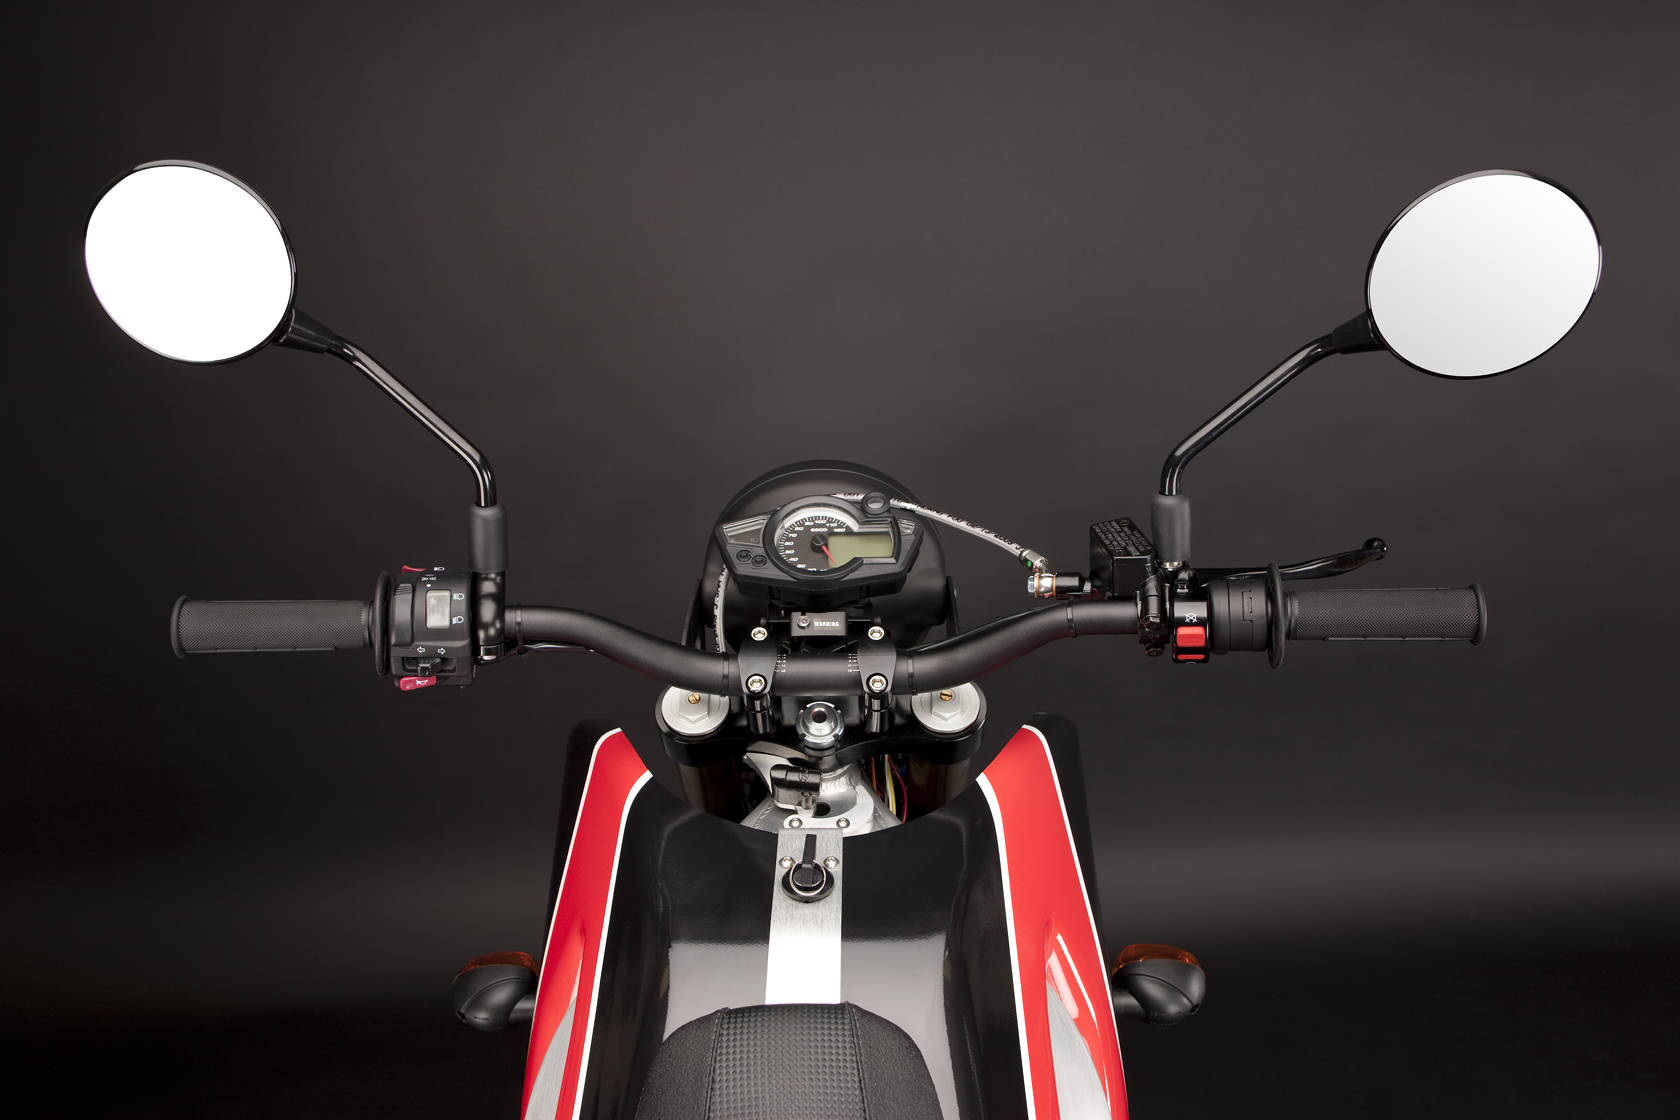 2010 Zero DS Electric Motorcycle: Mirrors and Controls